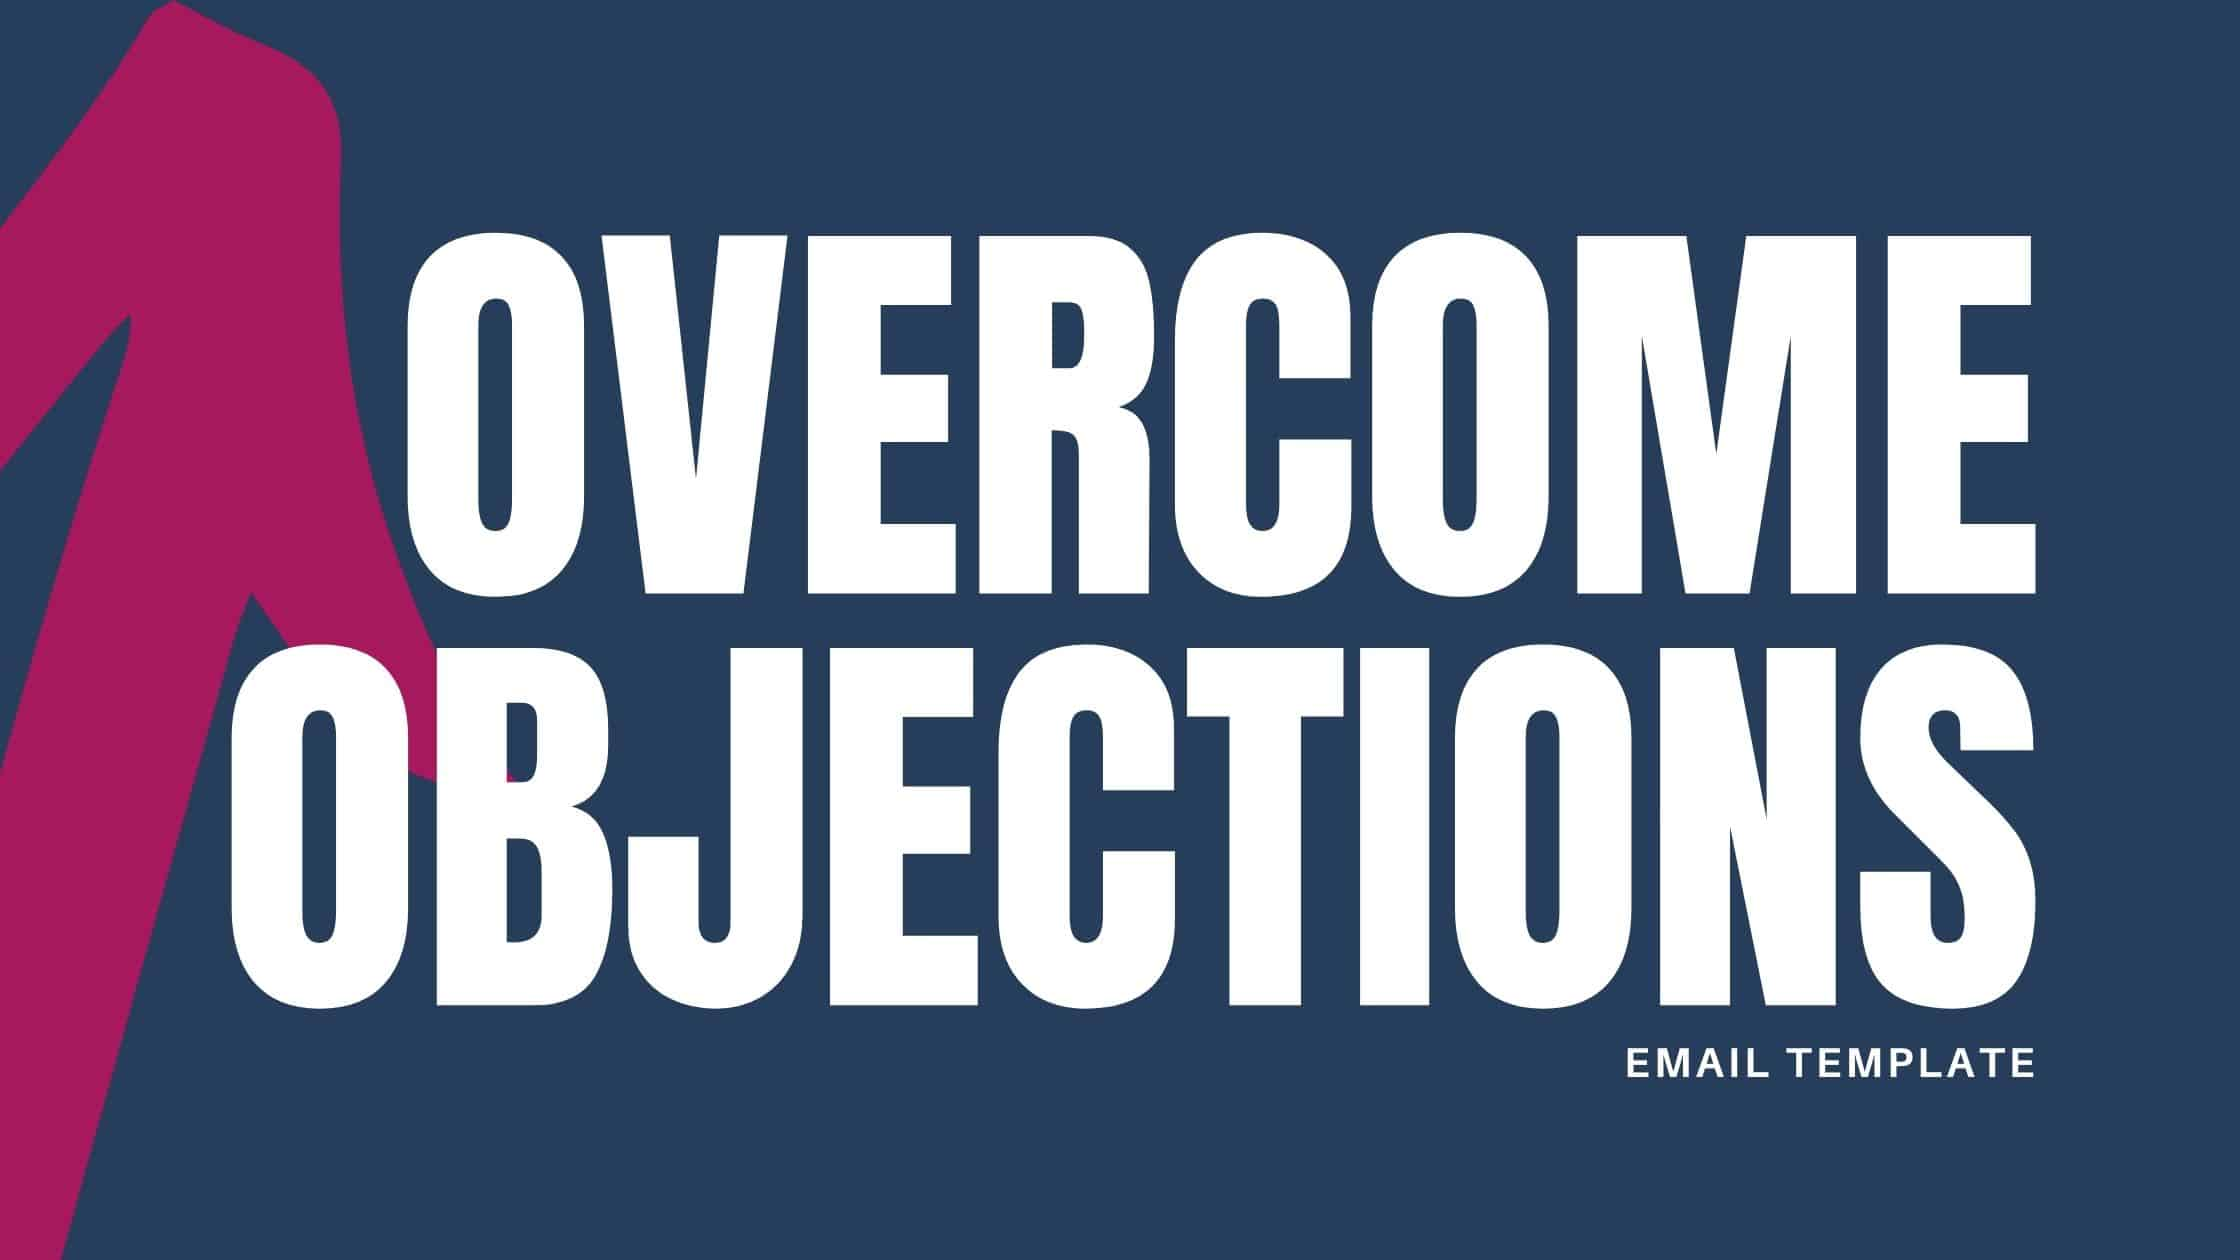 OVERCOME OBJECTIONS EMAIL TEMPLATE